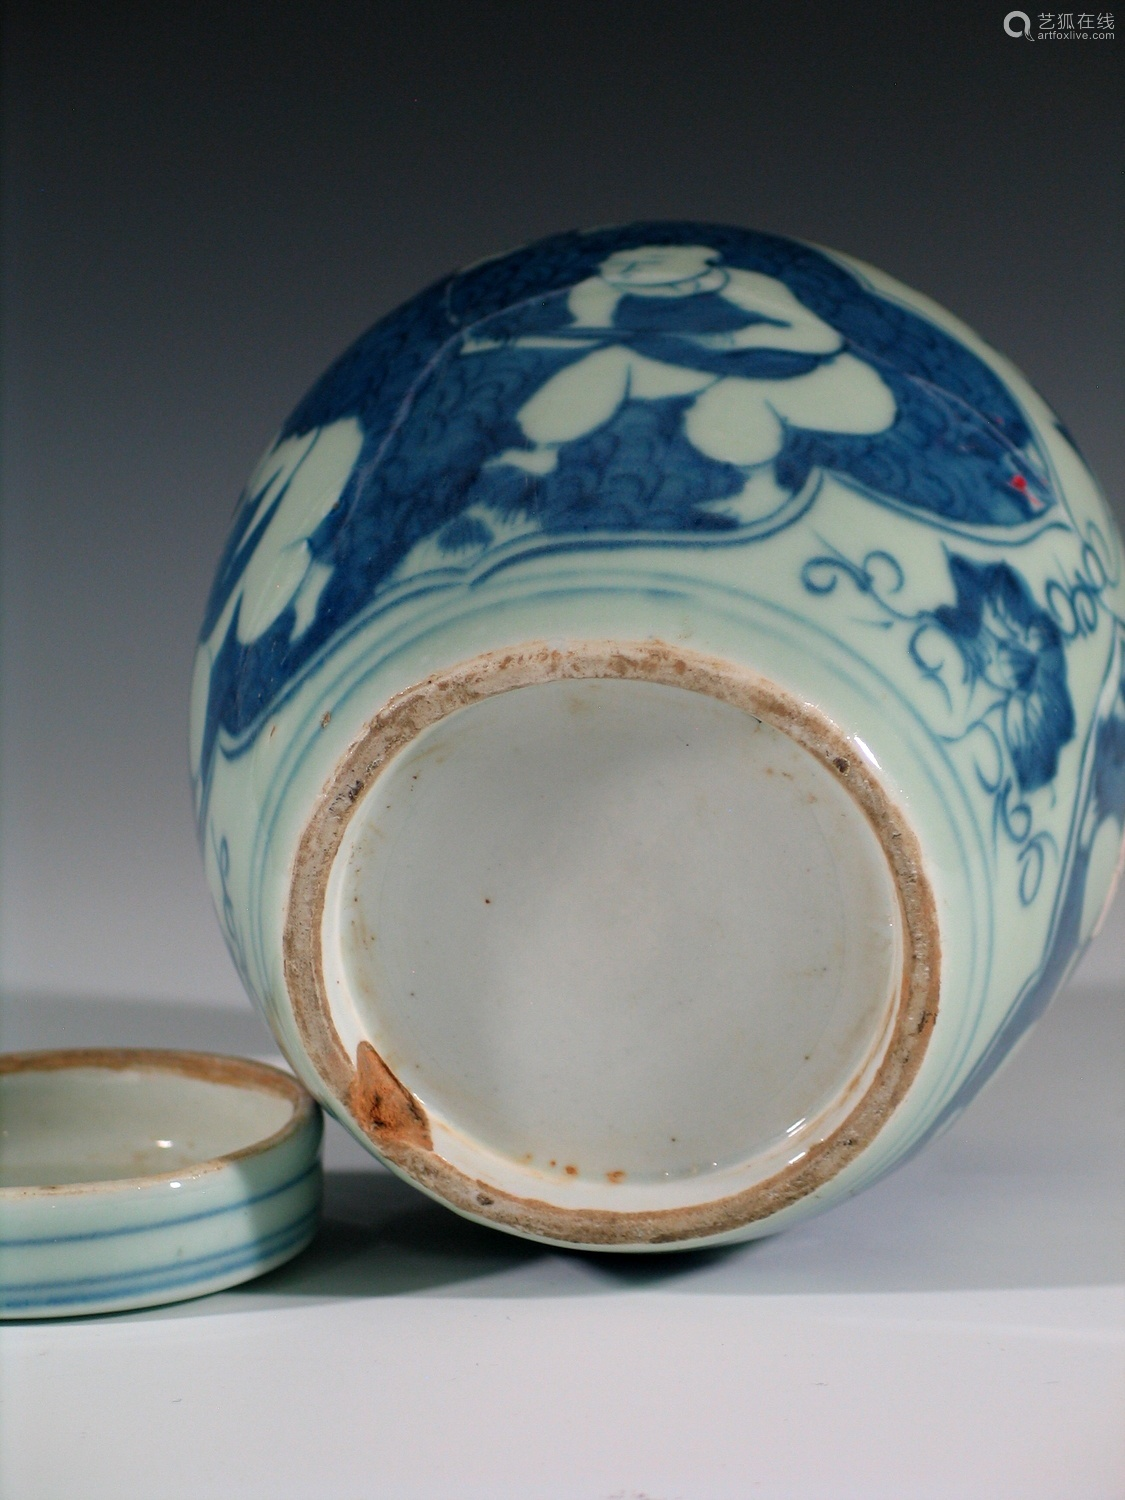 Chinese blue and white porcelain jar with lid.